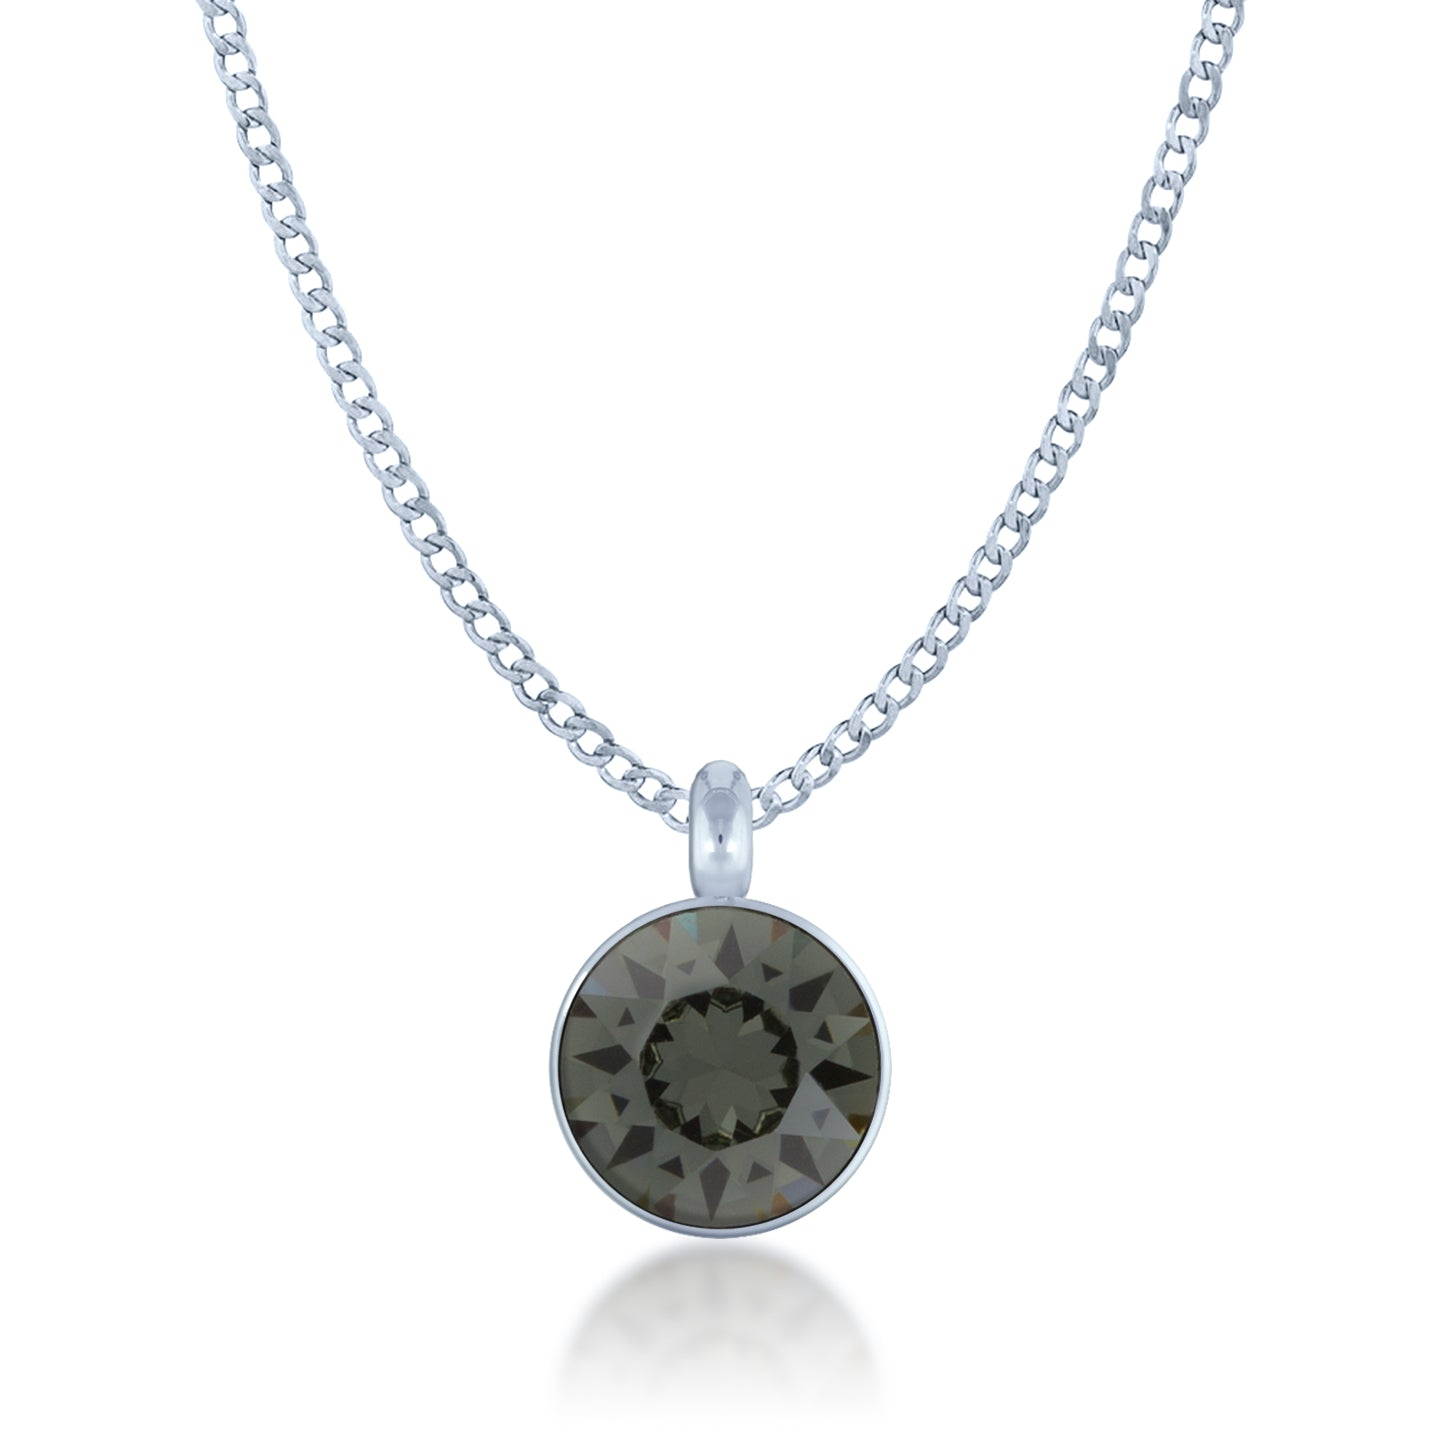 Bella Pendant Necklace with Black Diamond Round Crystals from Swarovski Silver Toned Rhodium Plated - Ed Heart